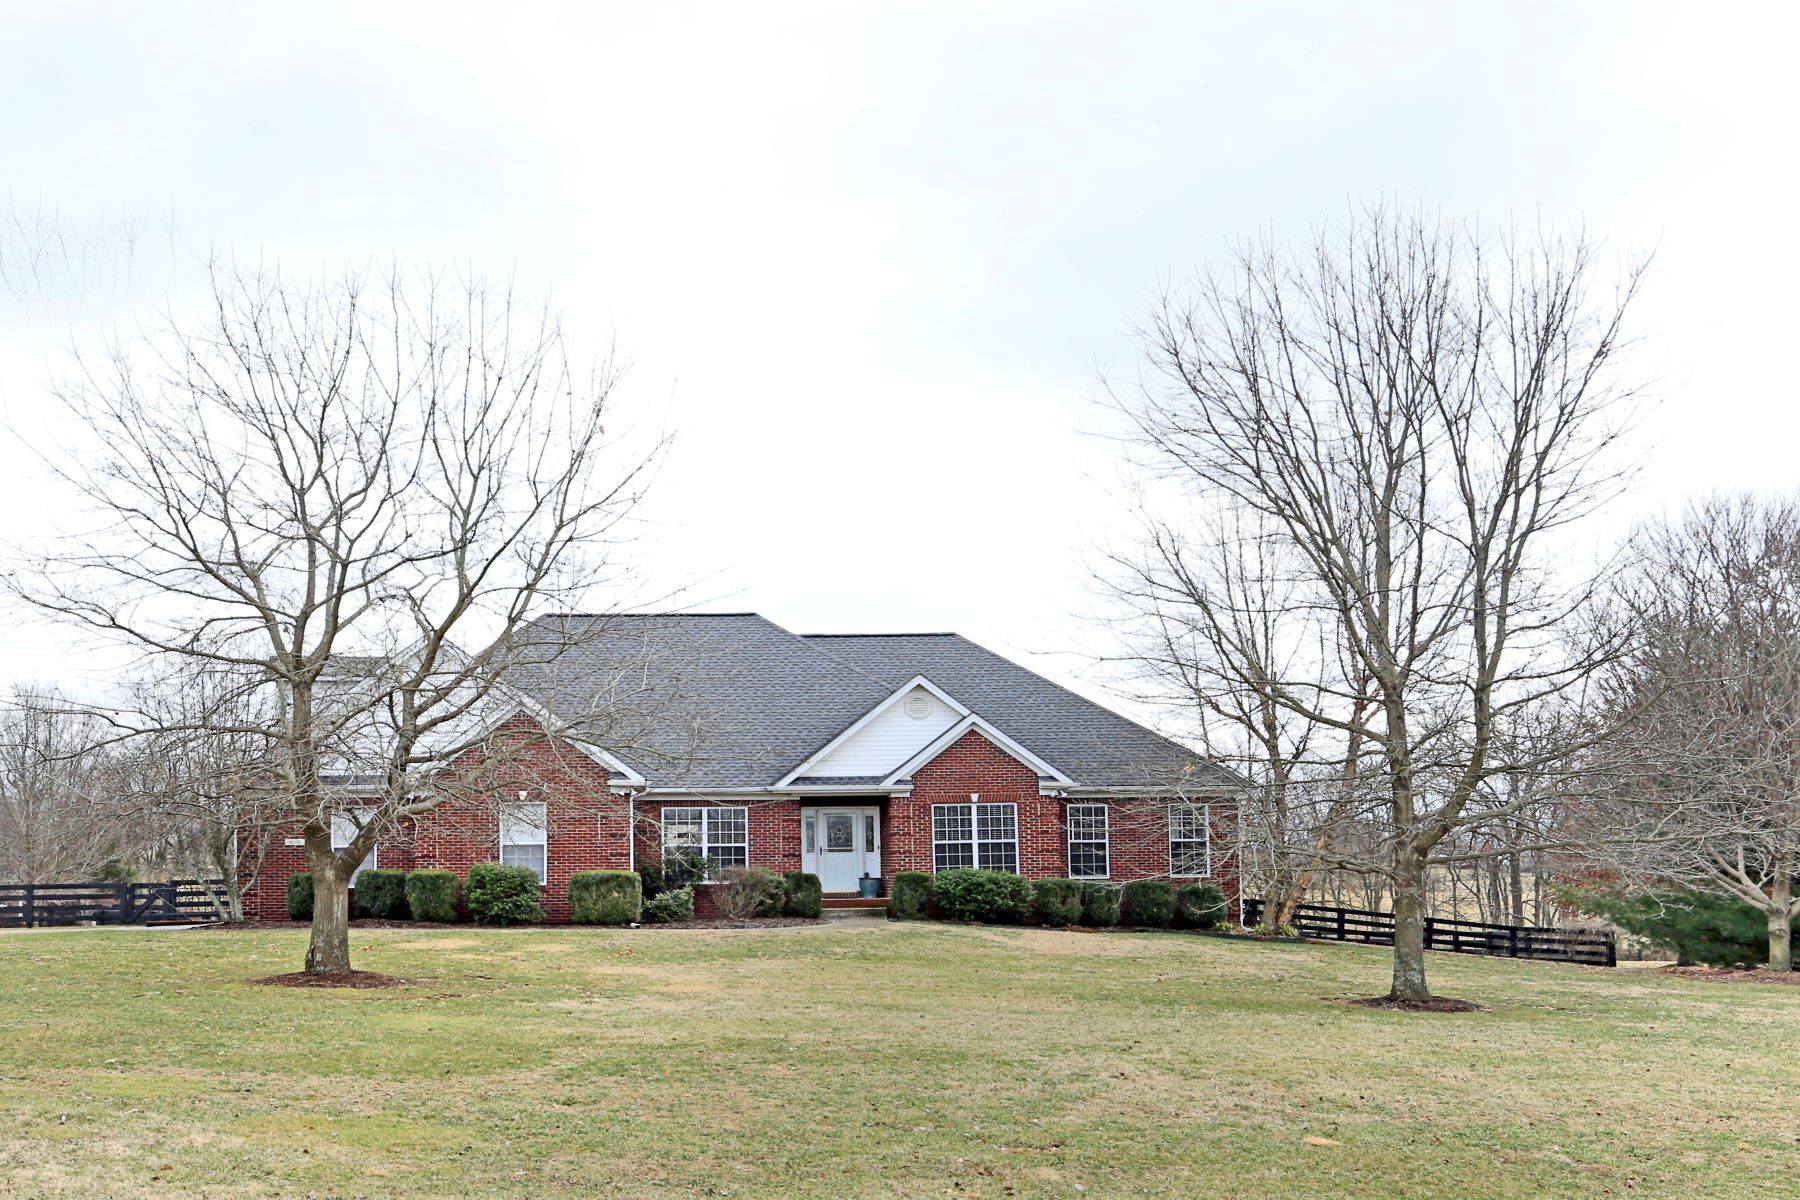 Single Family Home for Sale at 809 Lakeview Drive 809 Lakeview Drive Versailles, Kentucky 40383 United States